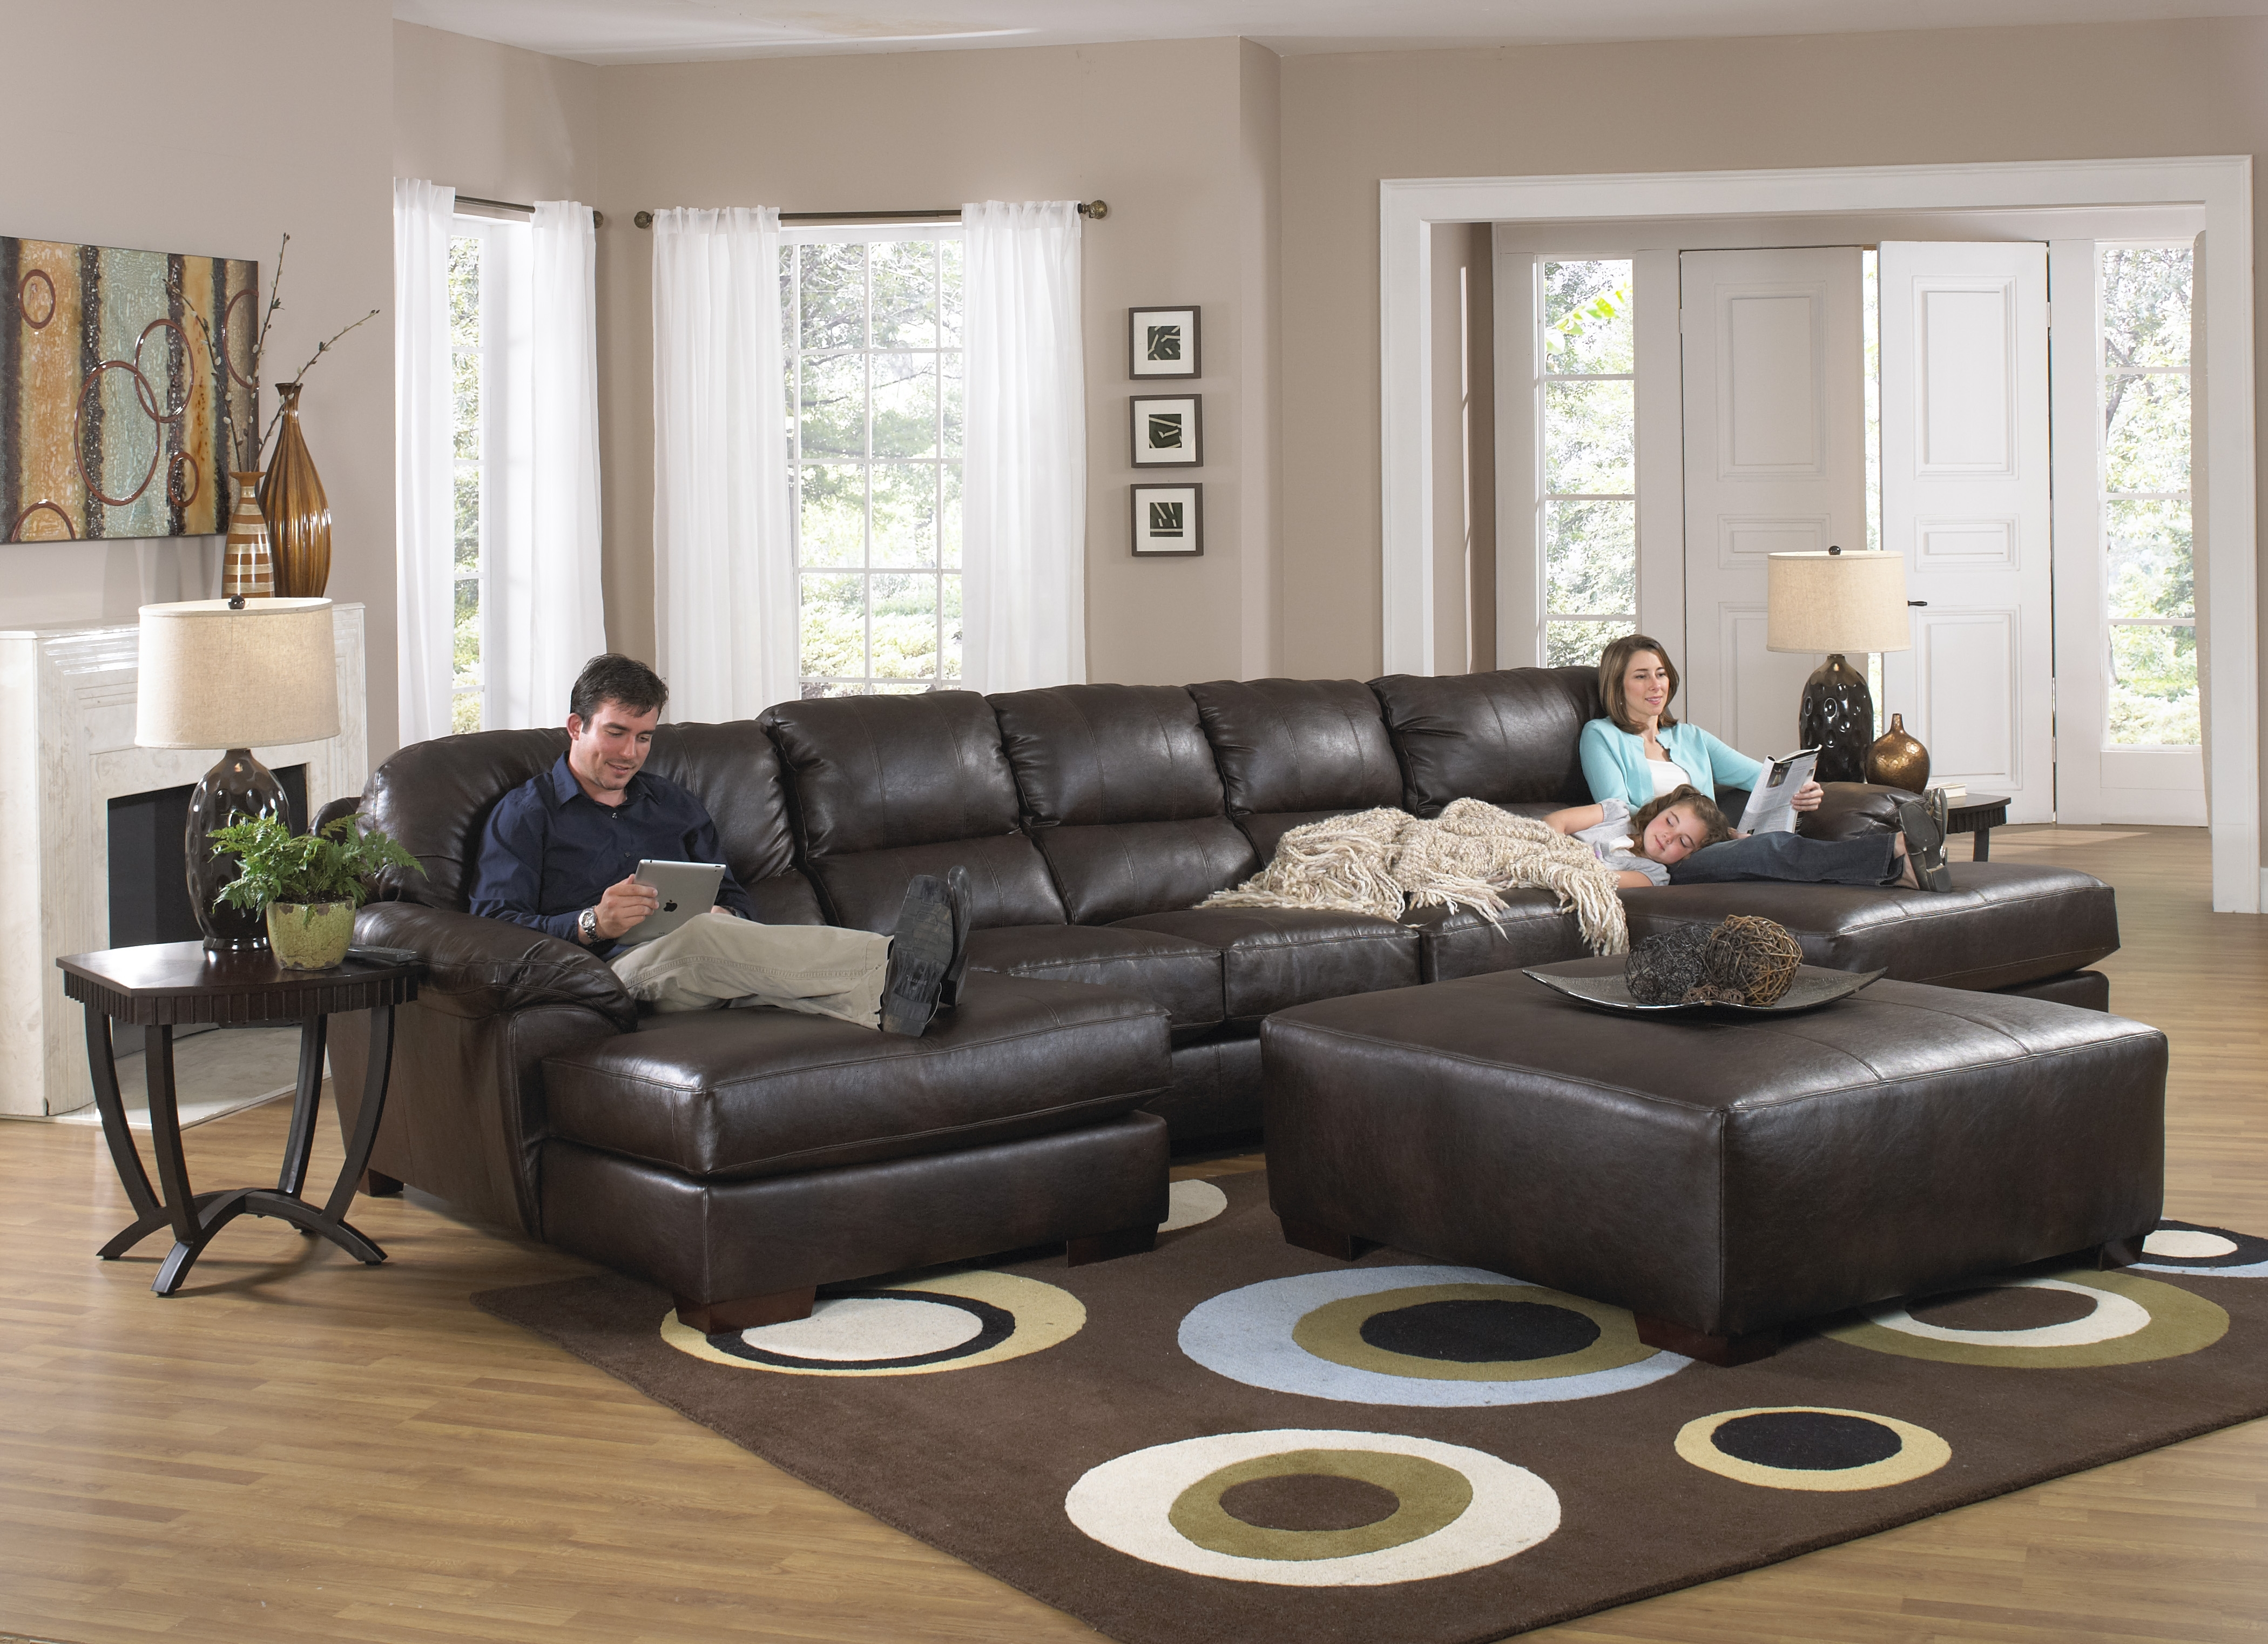 2017 Double Chaise Lounge Sofas Within Dark Brown Leather U Shaped Sofa With Double Chaise Lounge And (View 14 of 15)